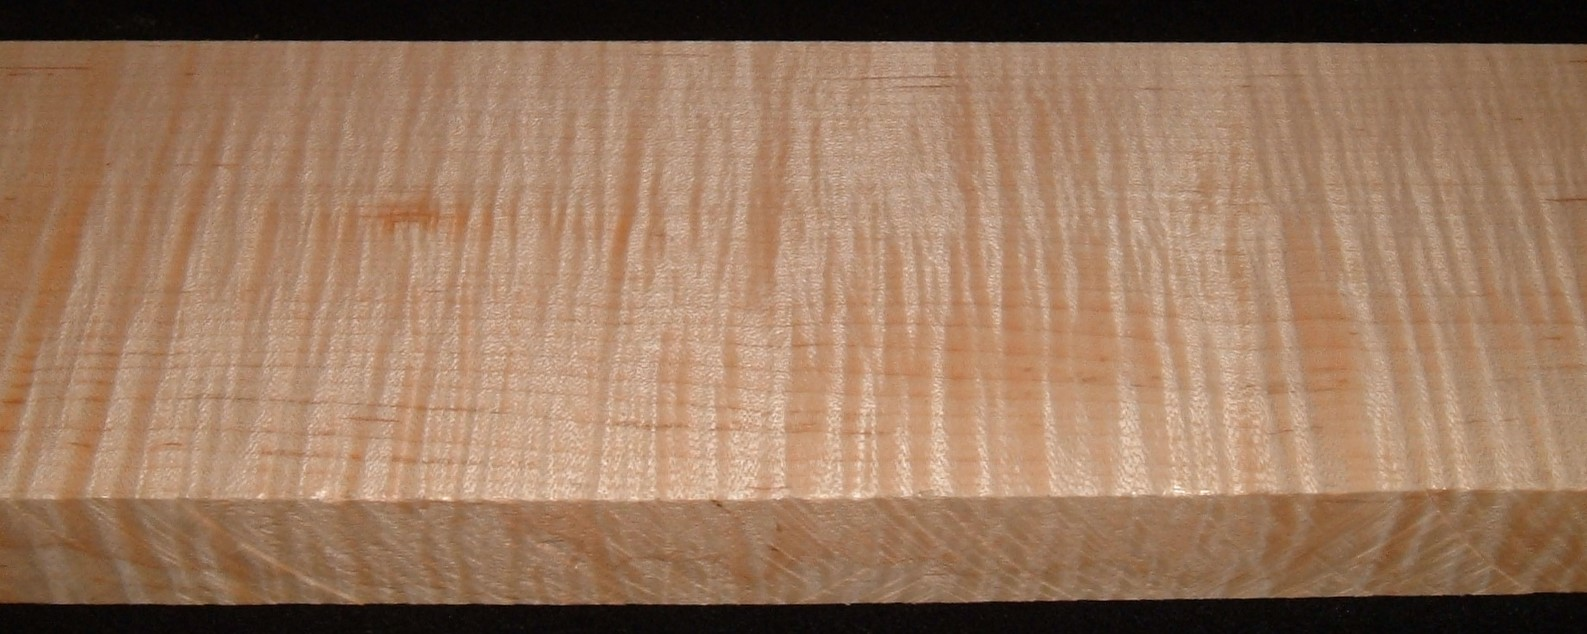 QS2104-48JK, 1-1/4+x4-1/4x44, Quartersawn Curly Maple